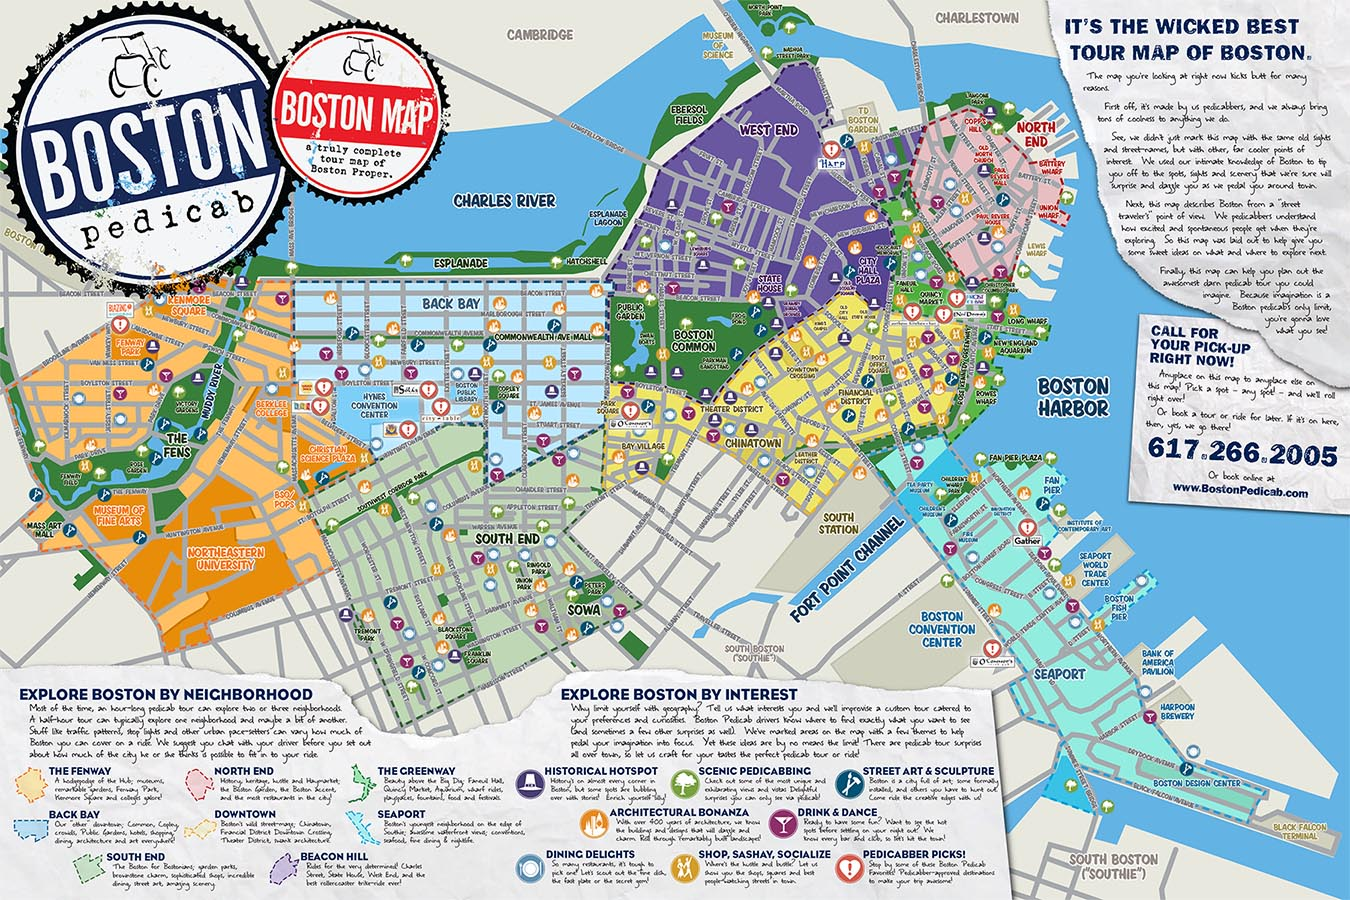 The Absolute BEST Tour Map of Boston. Period. — Boston Pedicab